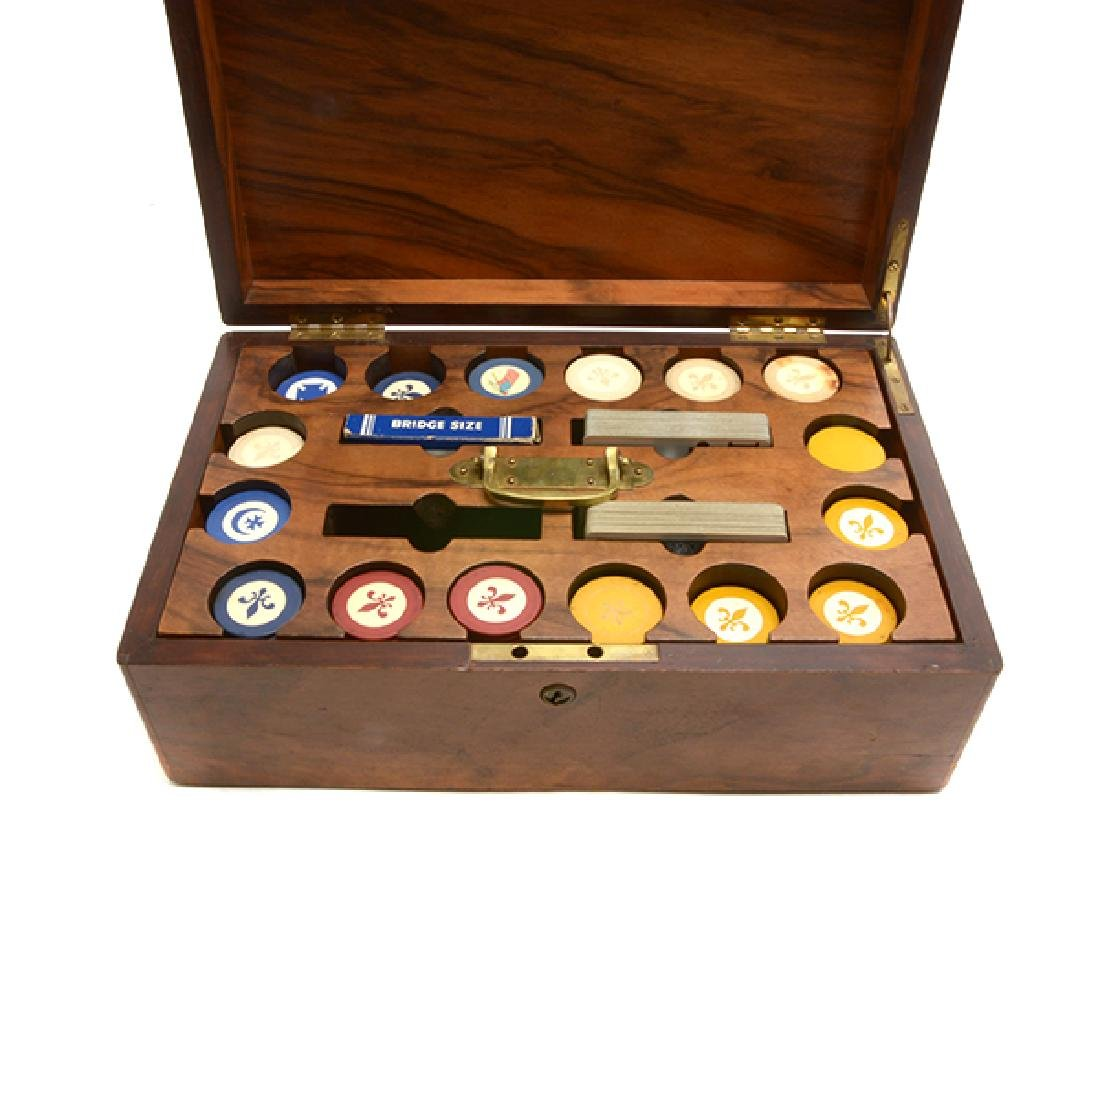 English Edwardian Poker Chip Set in Wood Case - 2